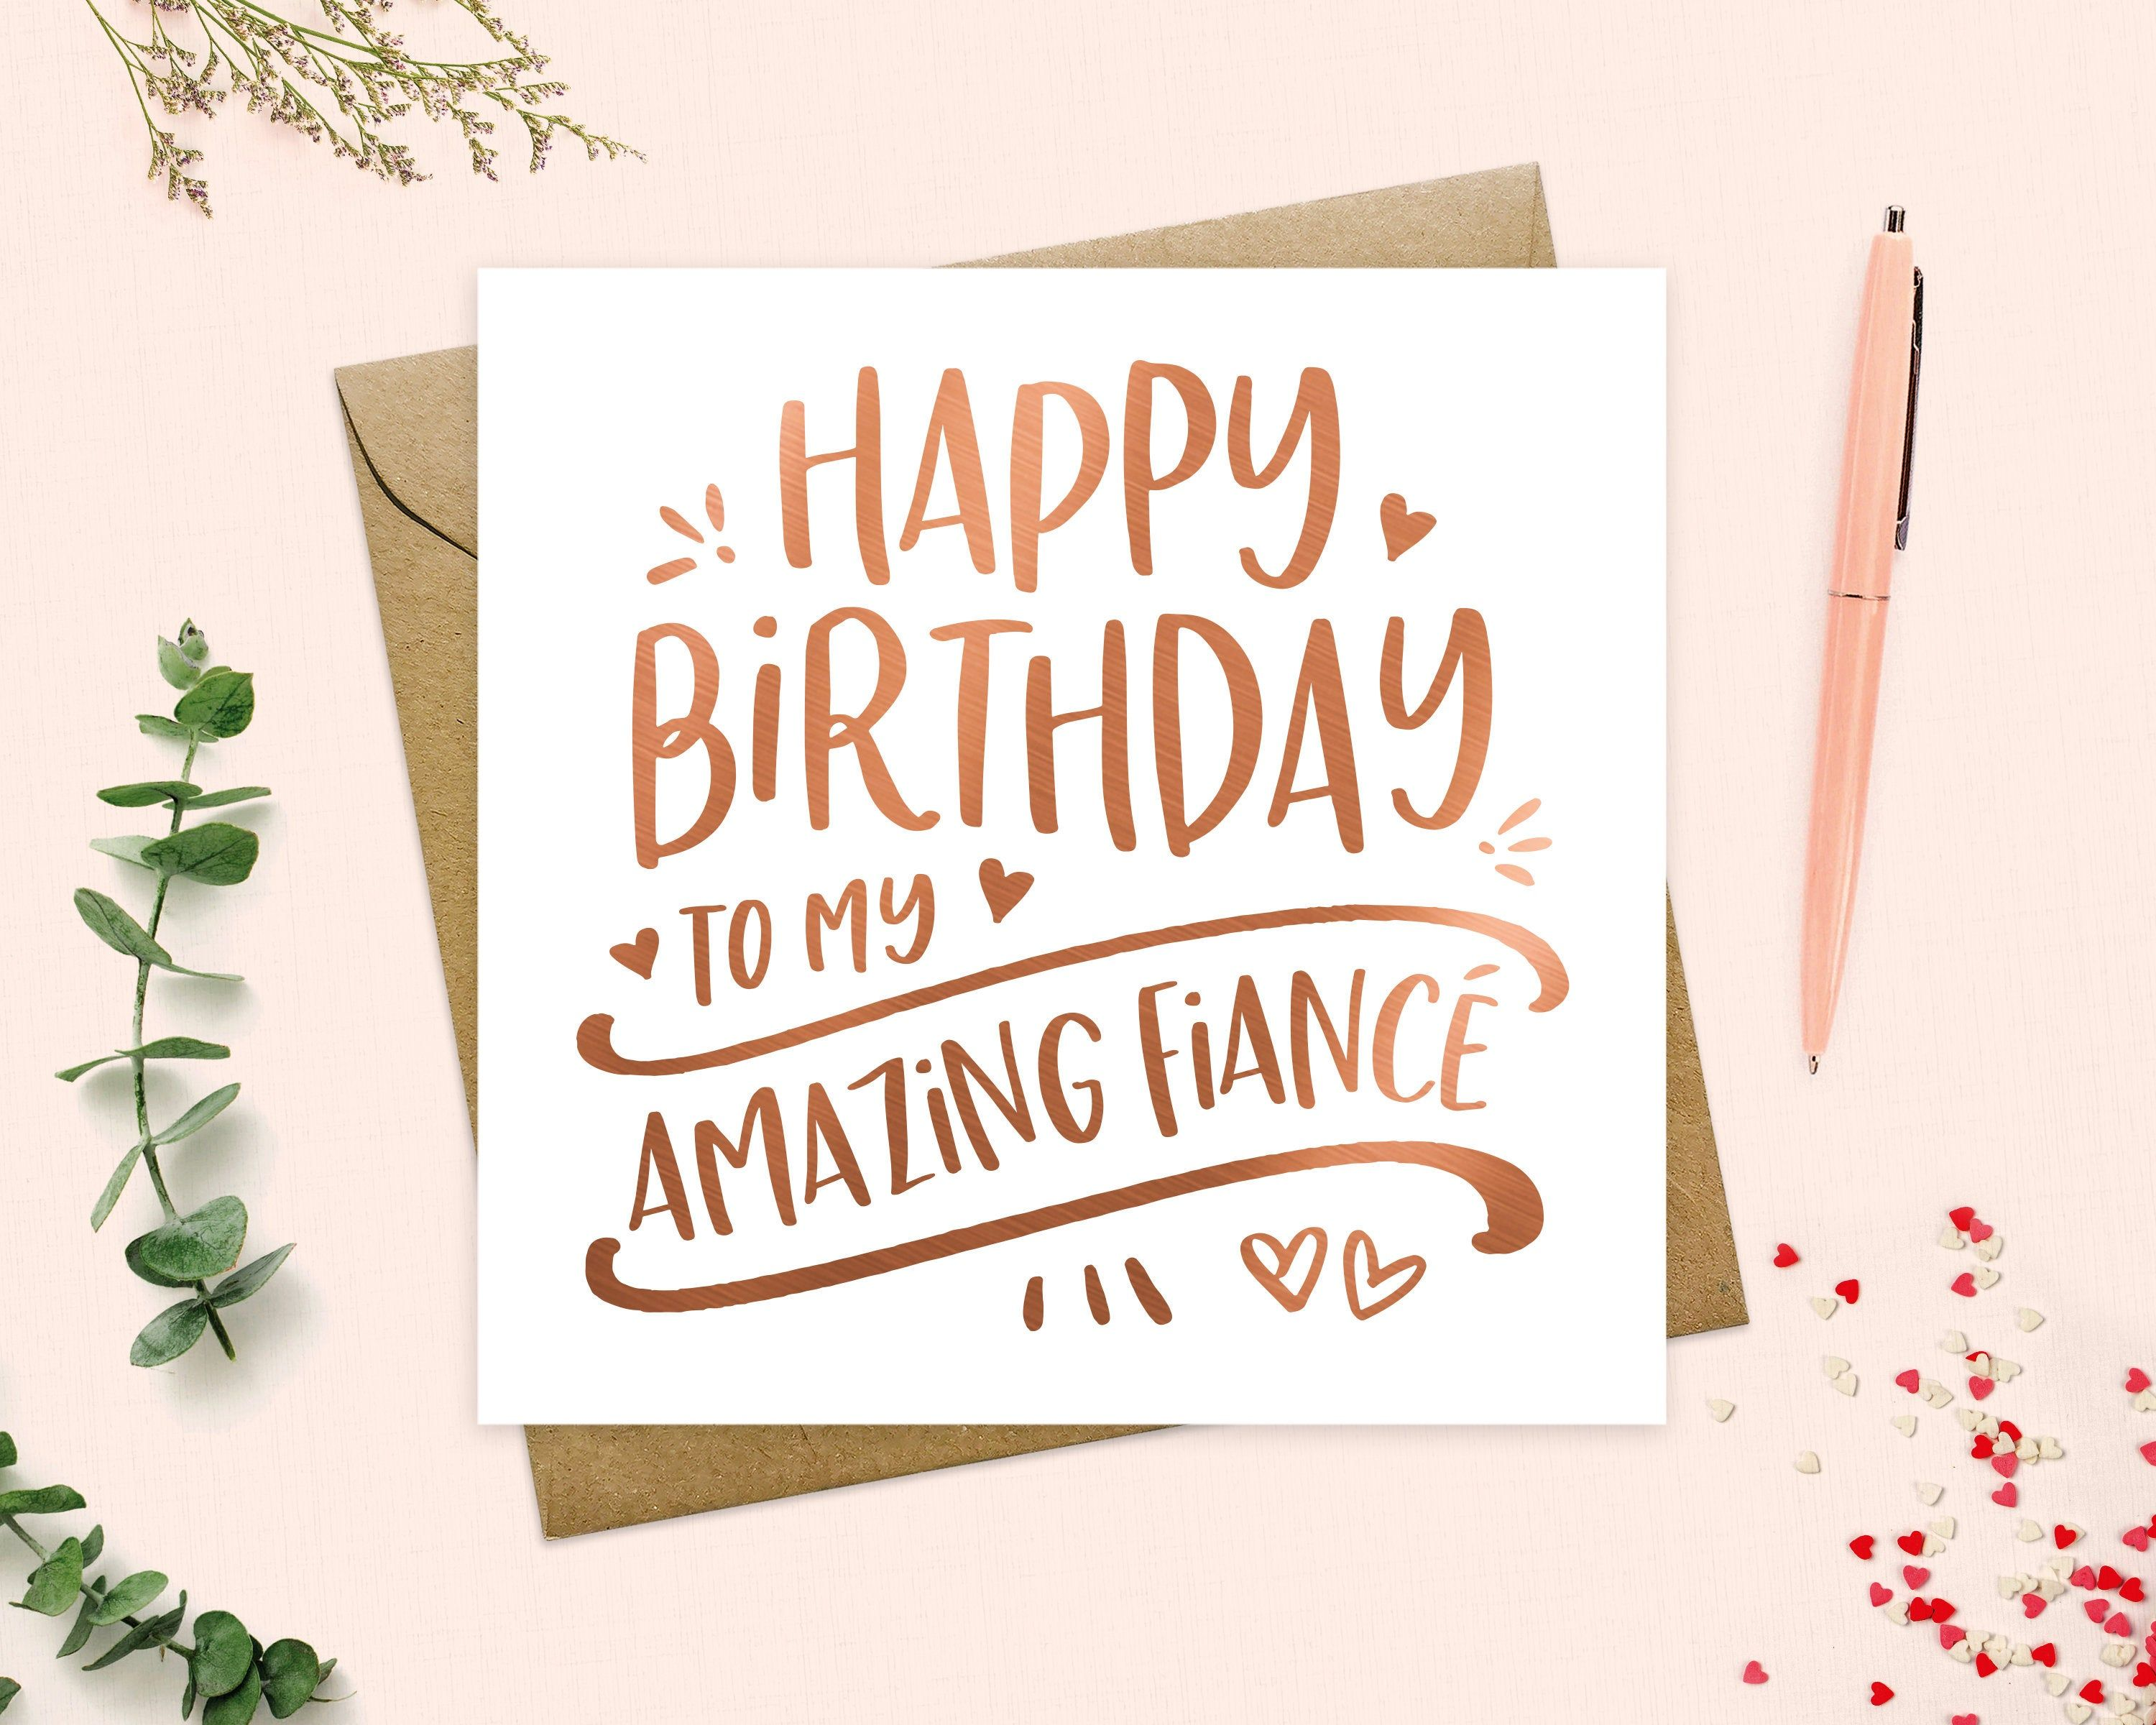 Happy Birthday To My Fiance Card To My Fiance Or Fiancee On Your Birthday To My Wife Card Metallic Foil Keepsake Real Foil Birthday Cards For Friends Best Friend Birthday Cards